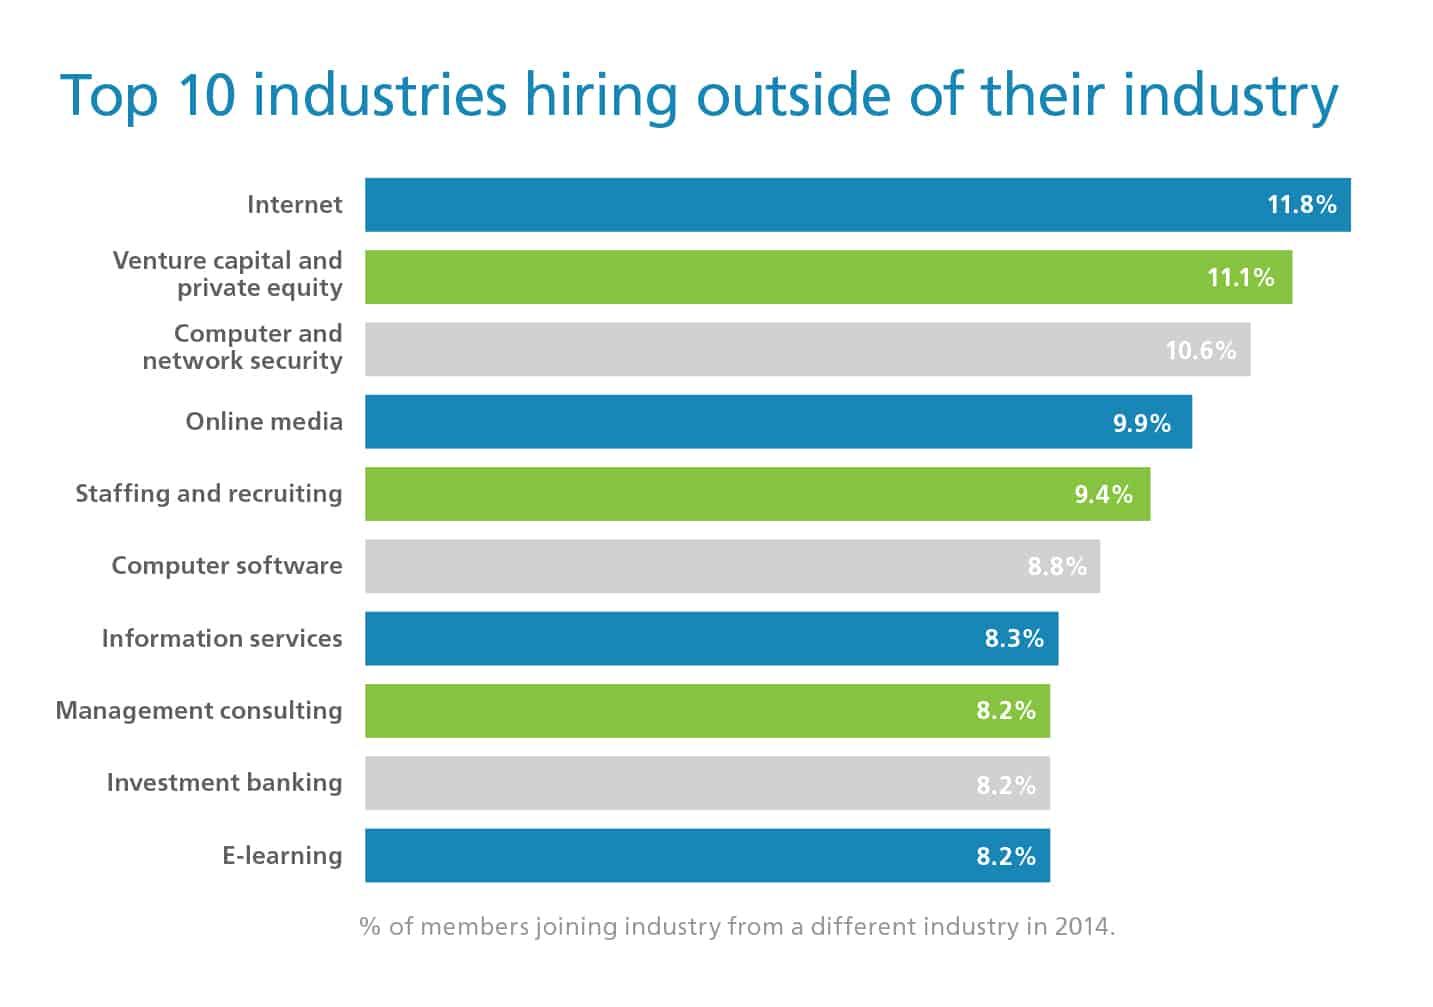 Top 10 industries hiring outside of their industry